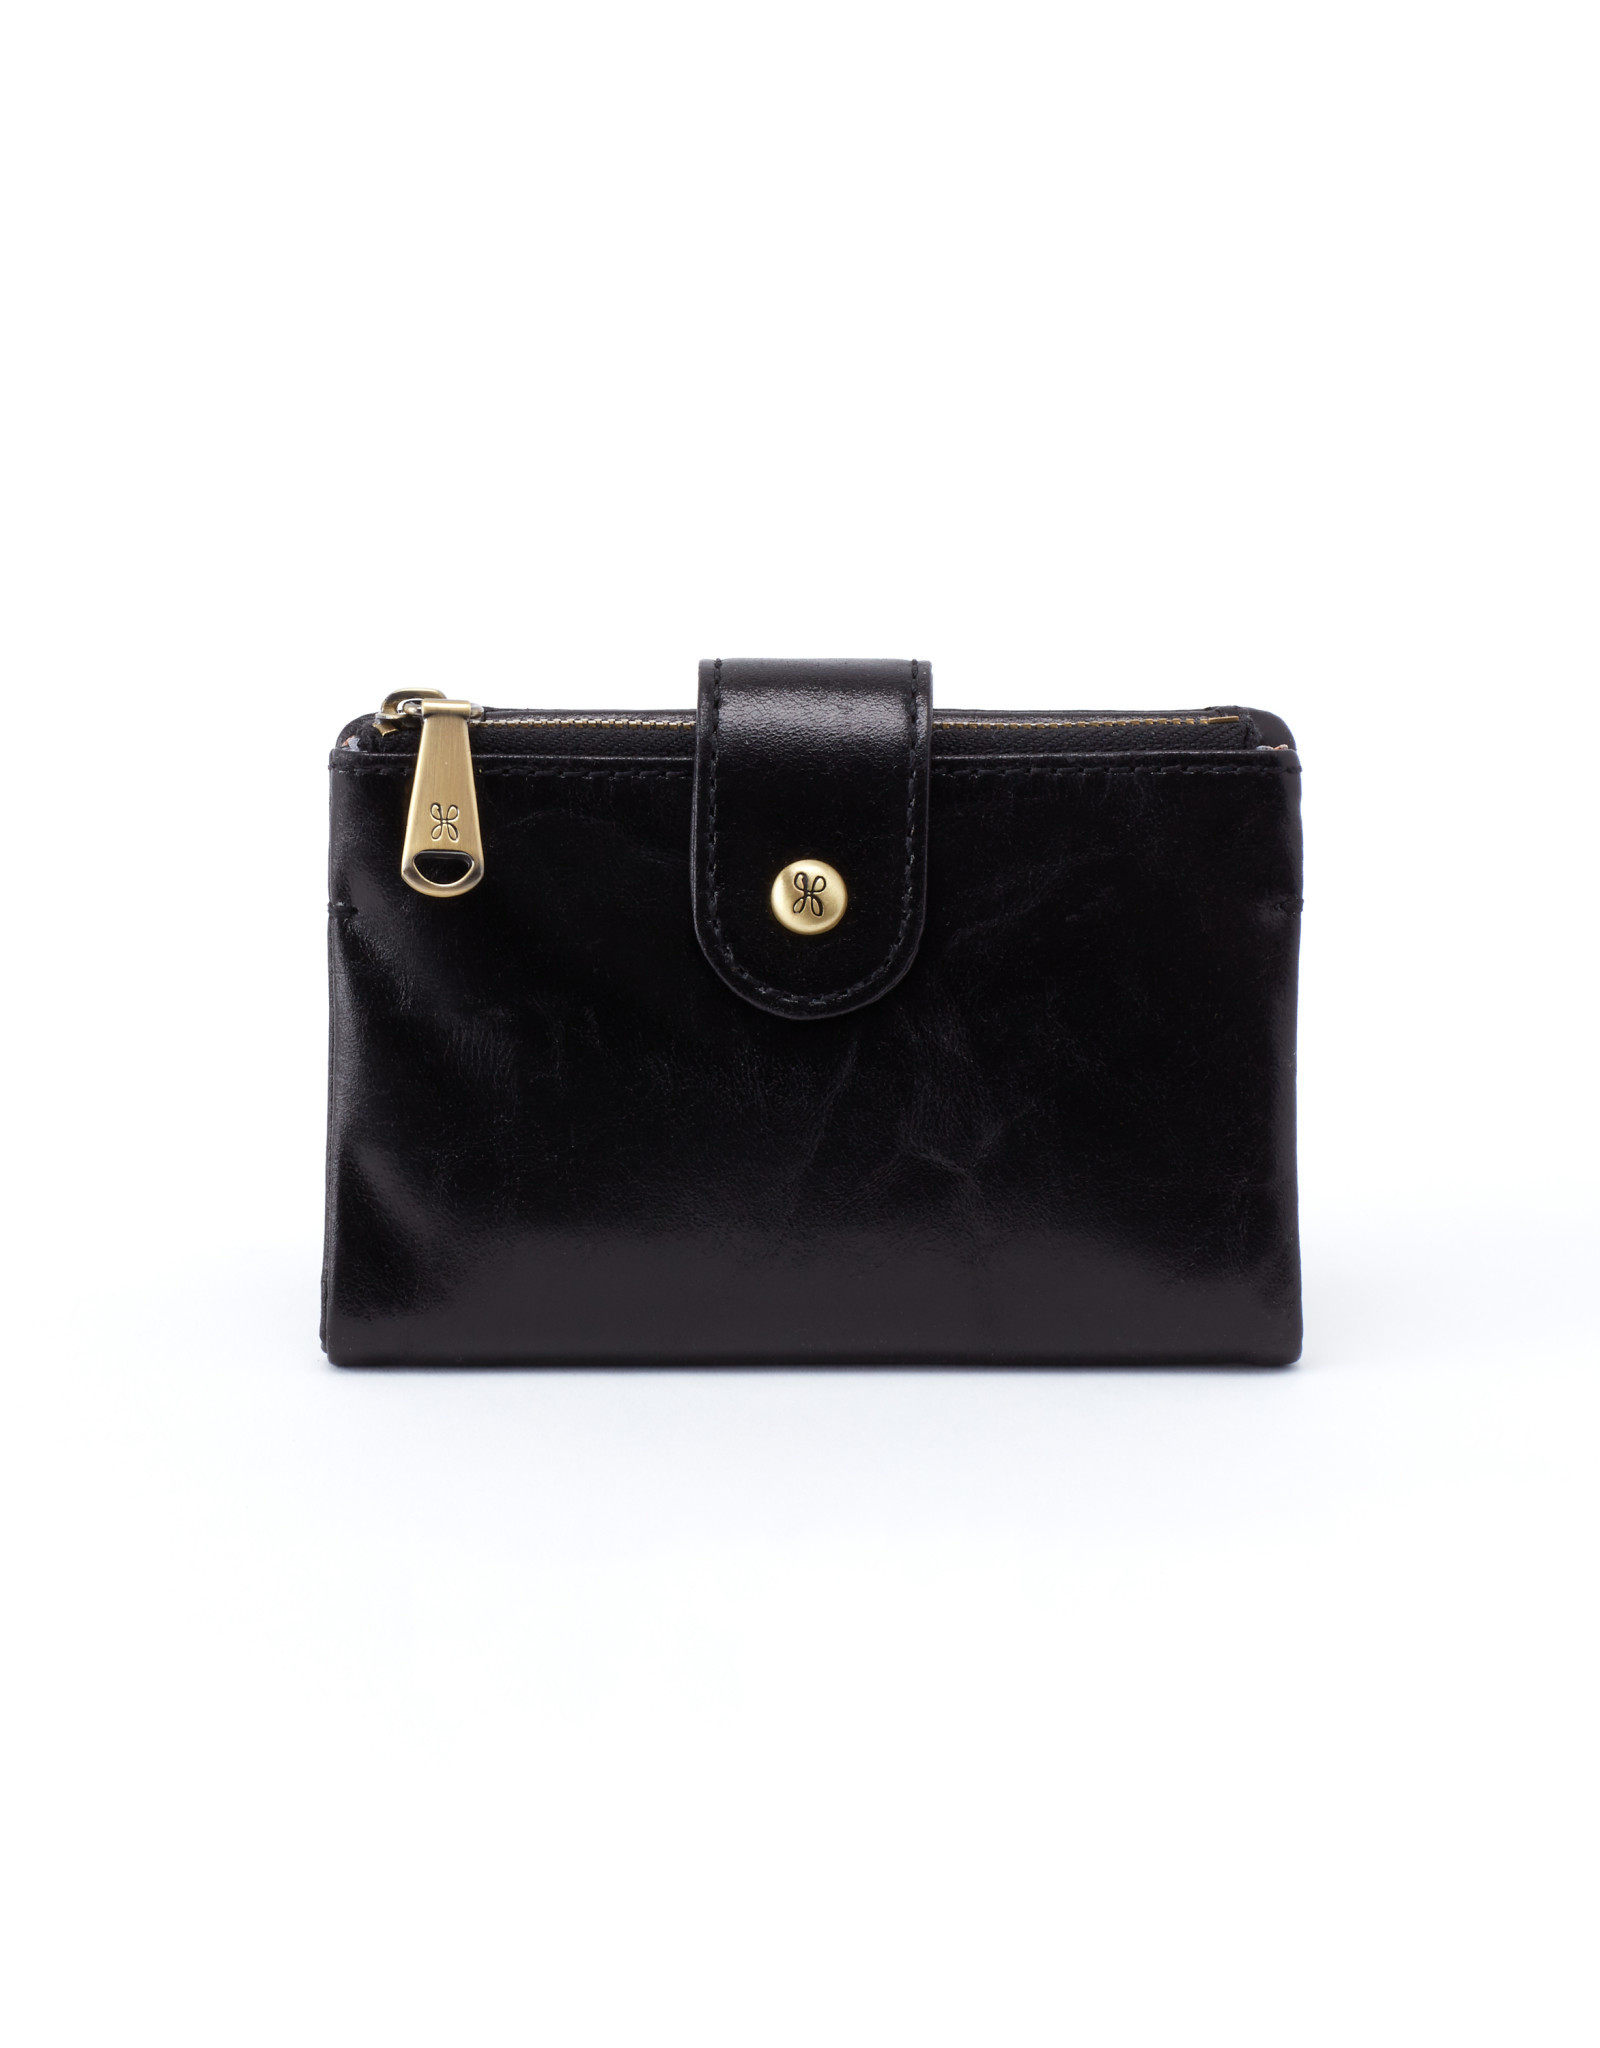 HOBO Ray Wallet - Black